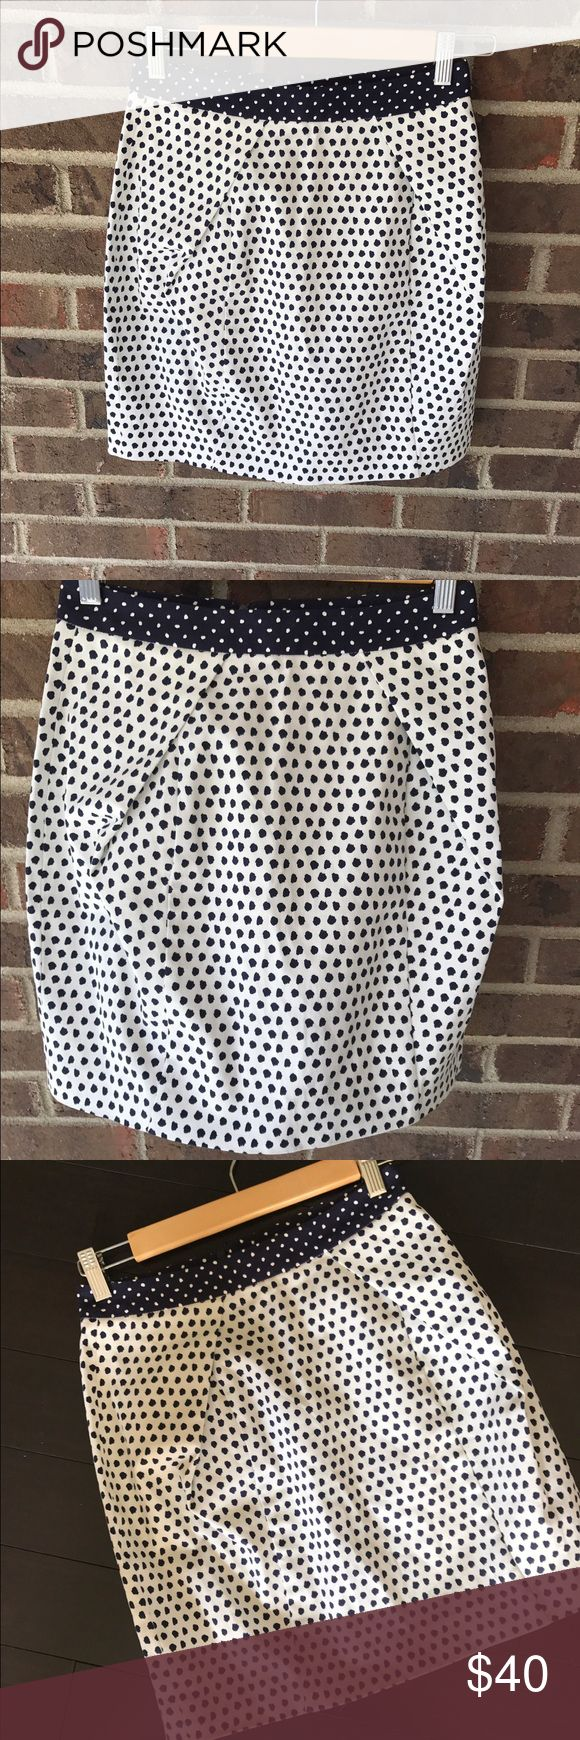 "Zara Mixed Print Mini Skirt Beautiful skirt in near perfect condition. 16"" in length. Thicker rigid material with no lining on the inside. Zipper closure in the back. Navy and ivory/cream color. Zara Skirts Mini"